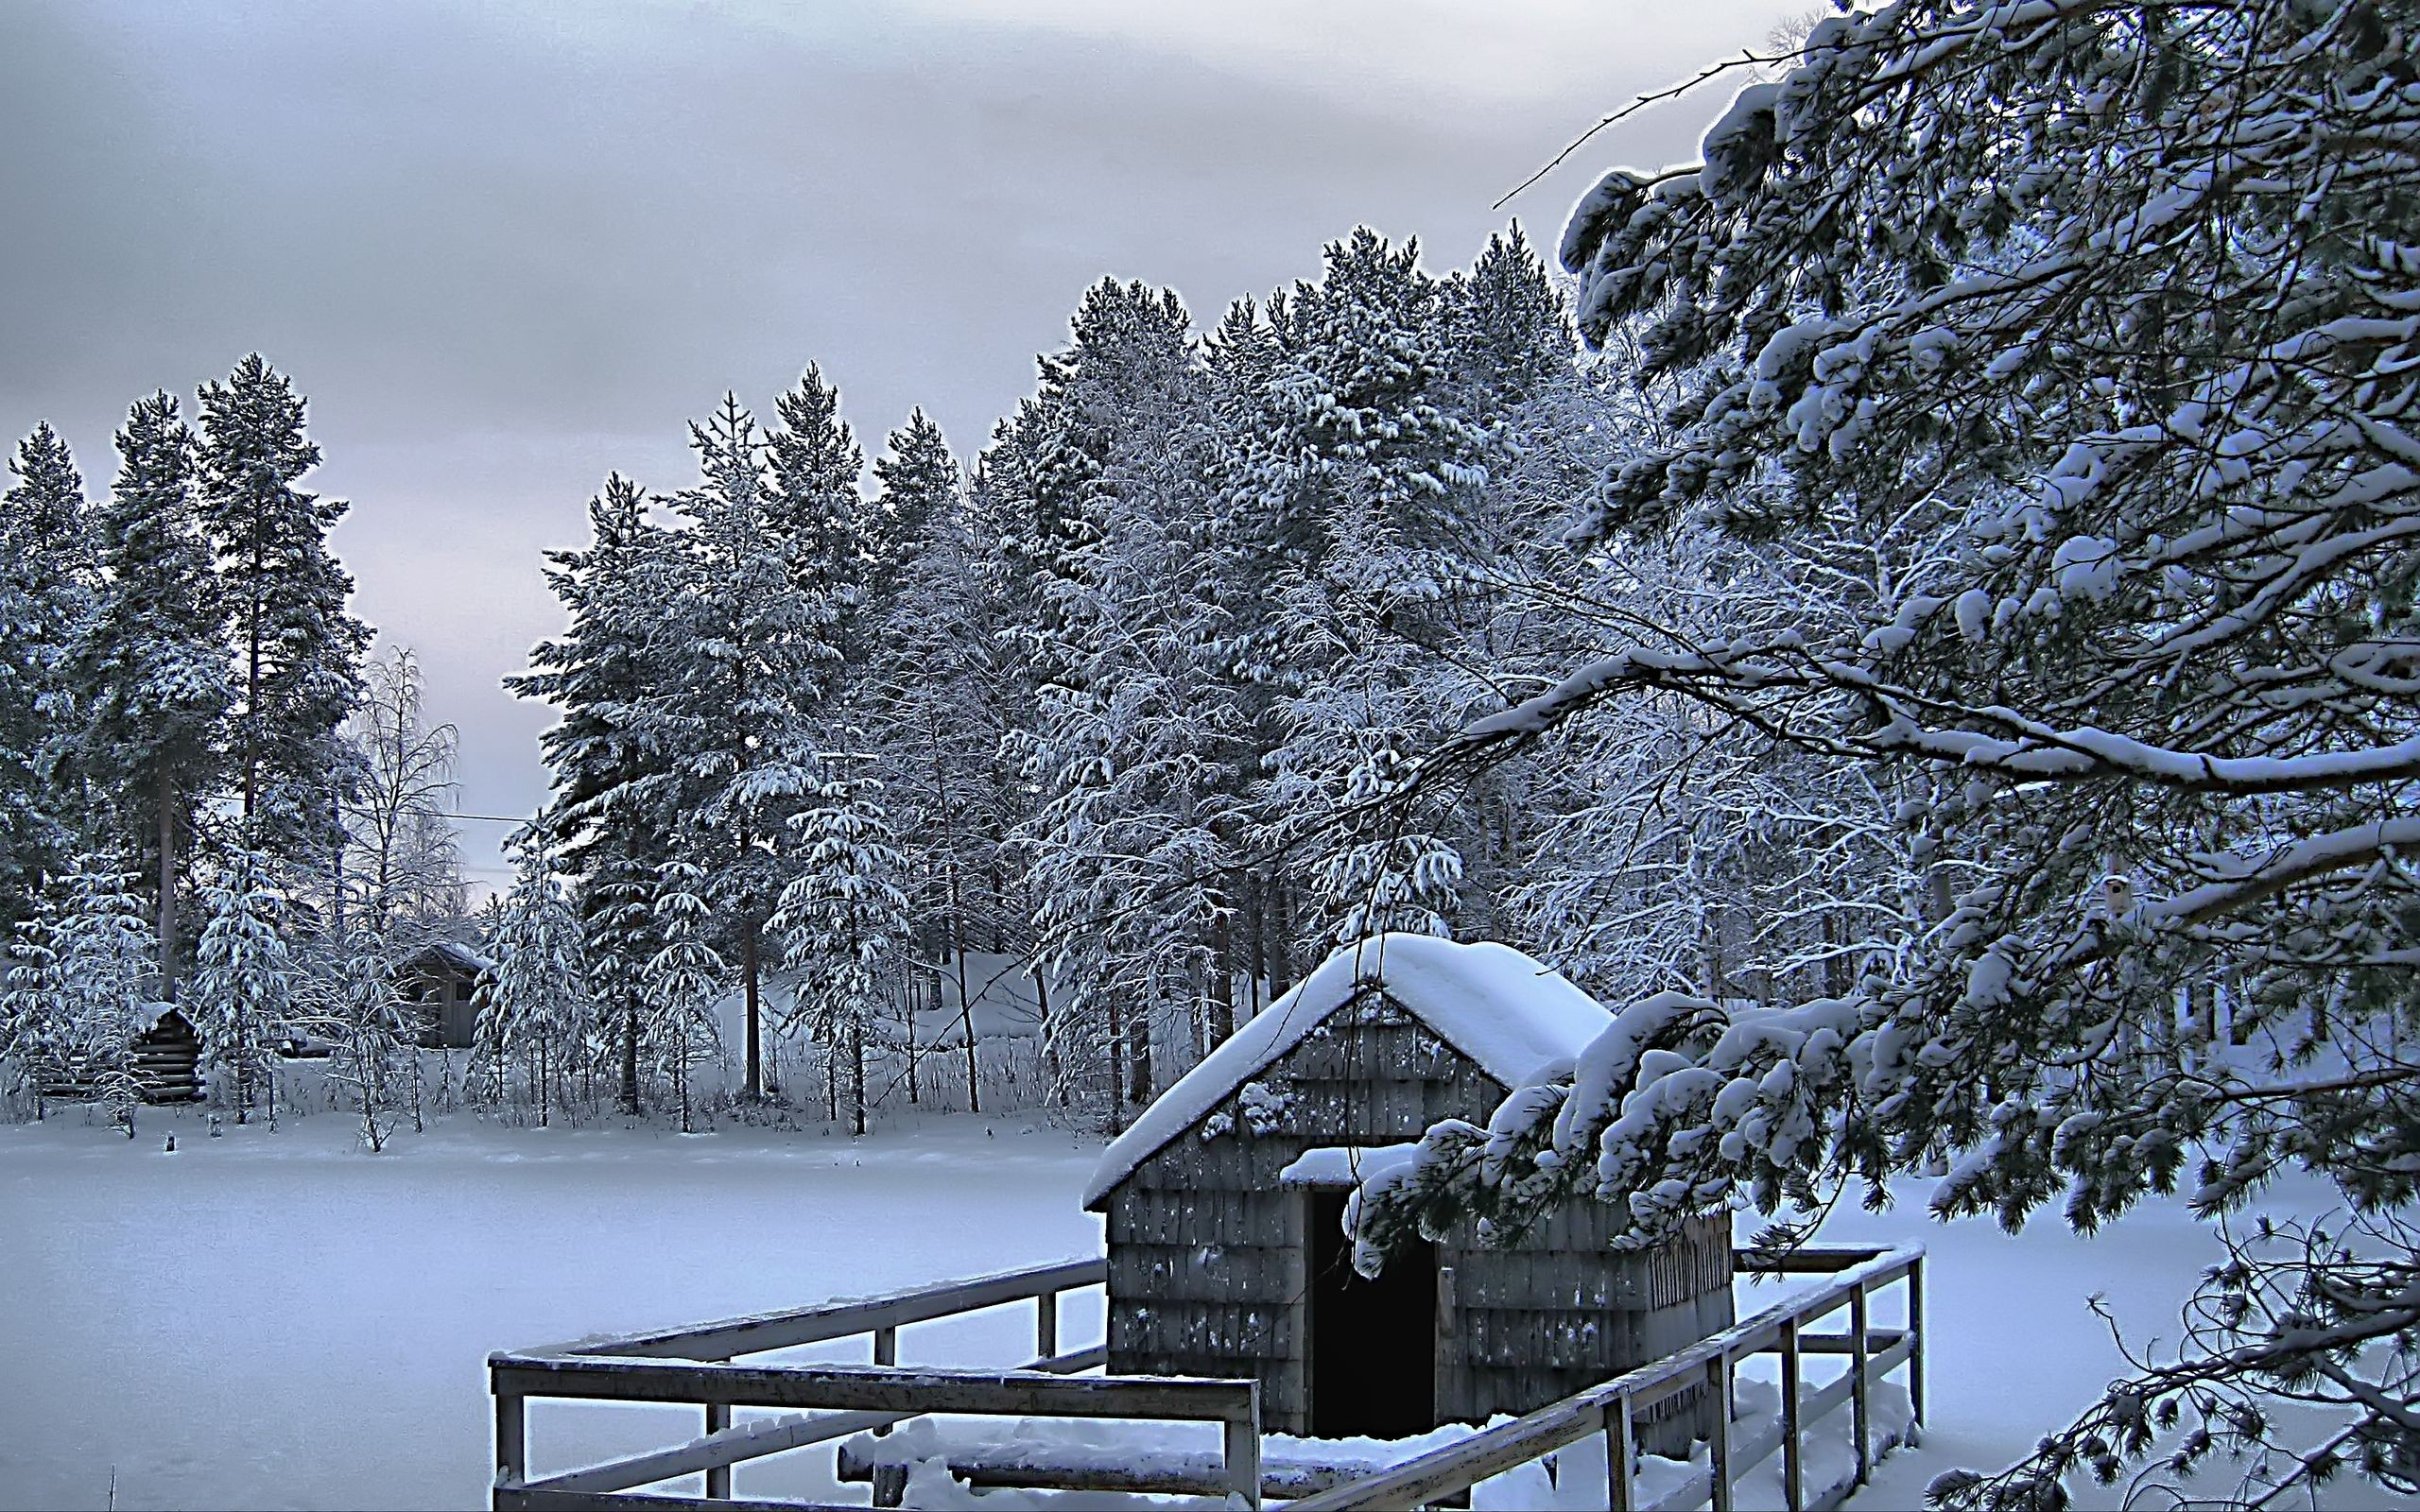 Winter Nature HD Wallpaper For Mobile